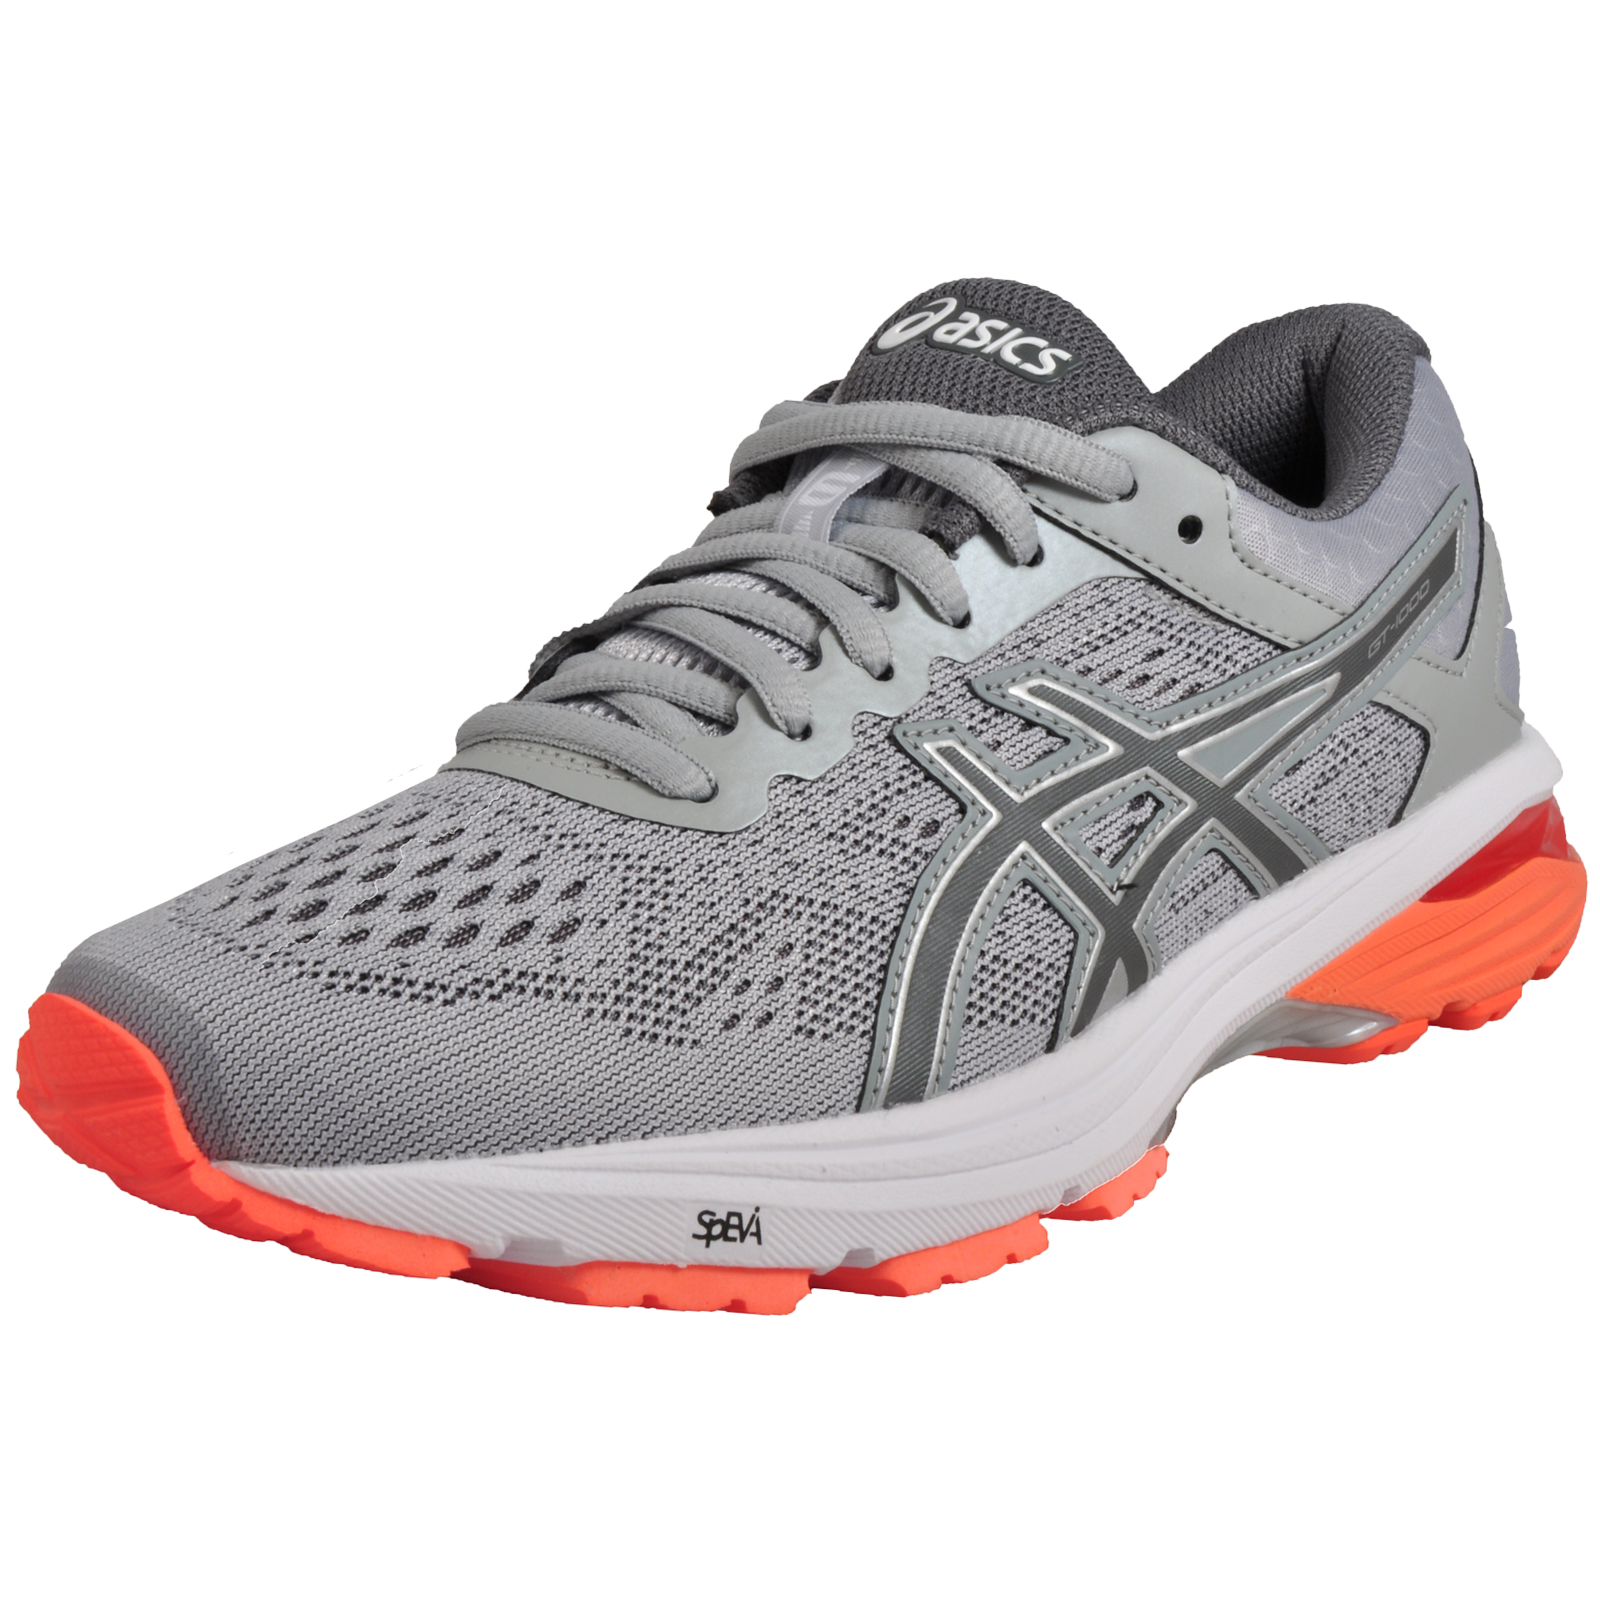 Asics GT 1000 6 Womens Premium Performance Running Shoes Mid Grey